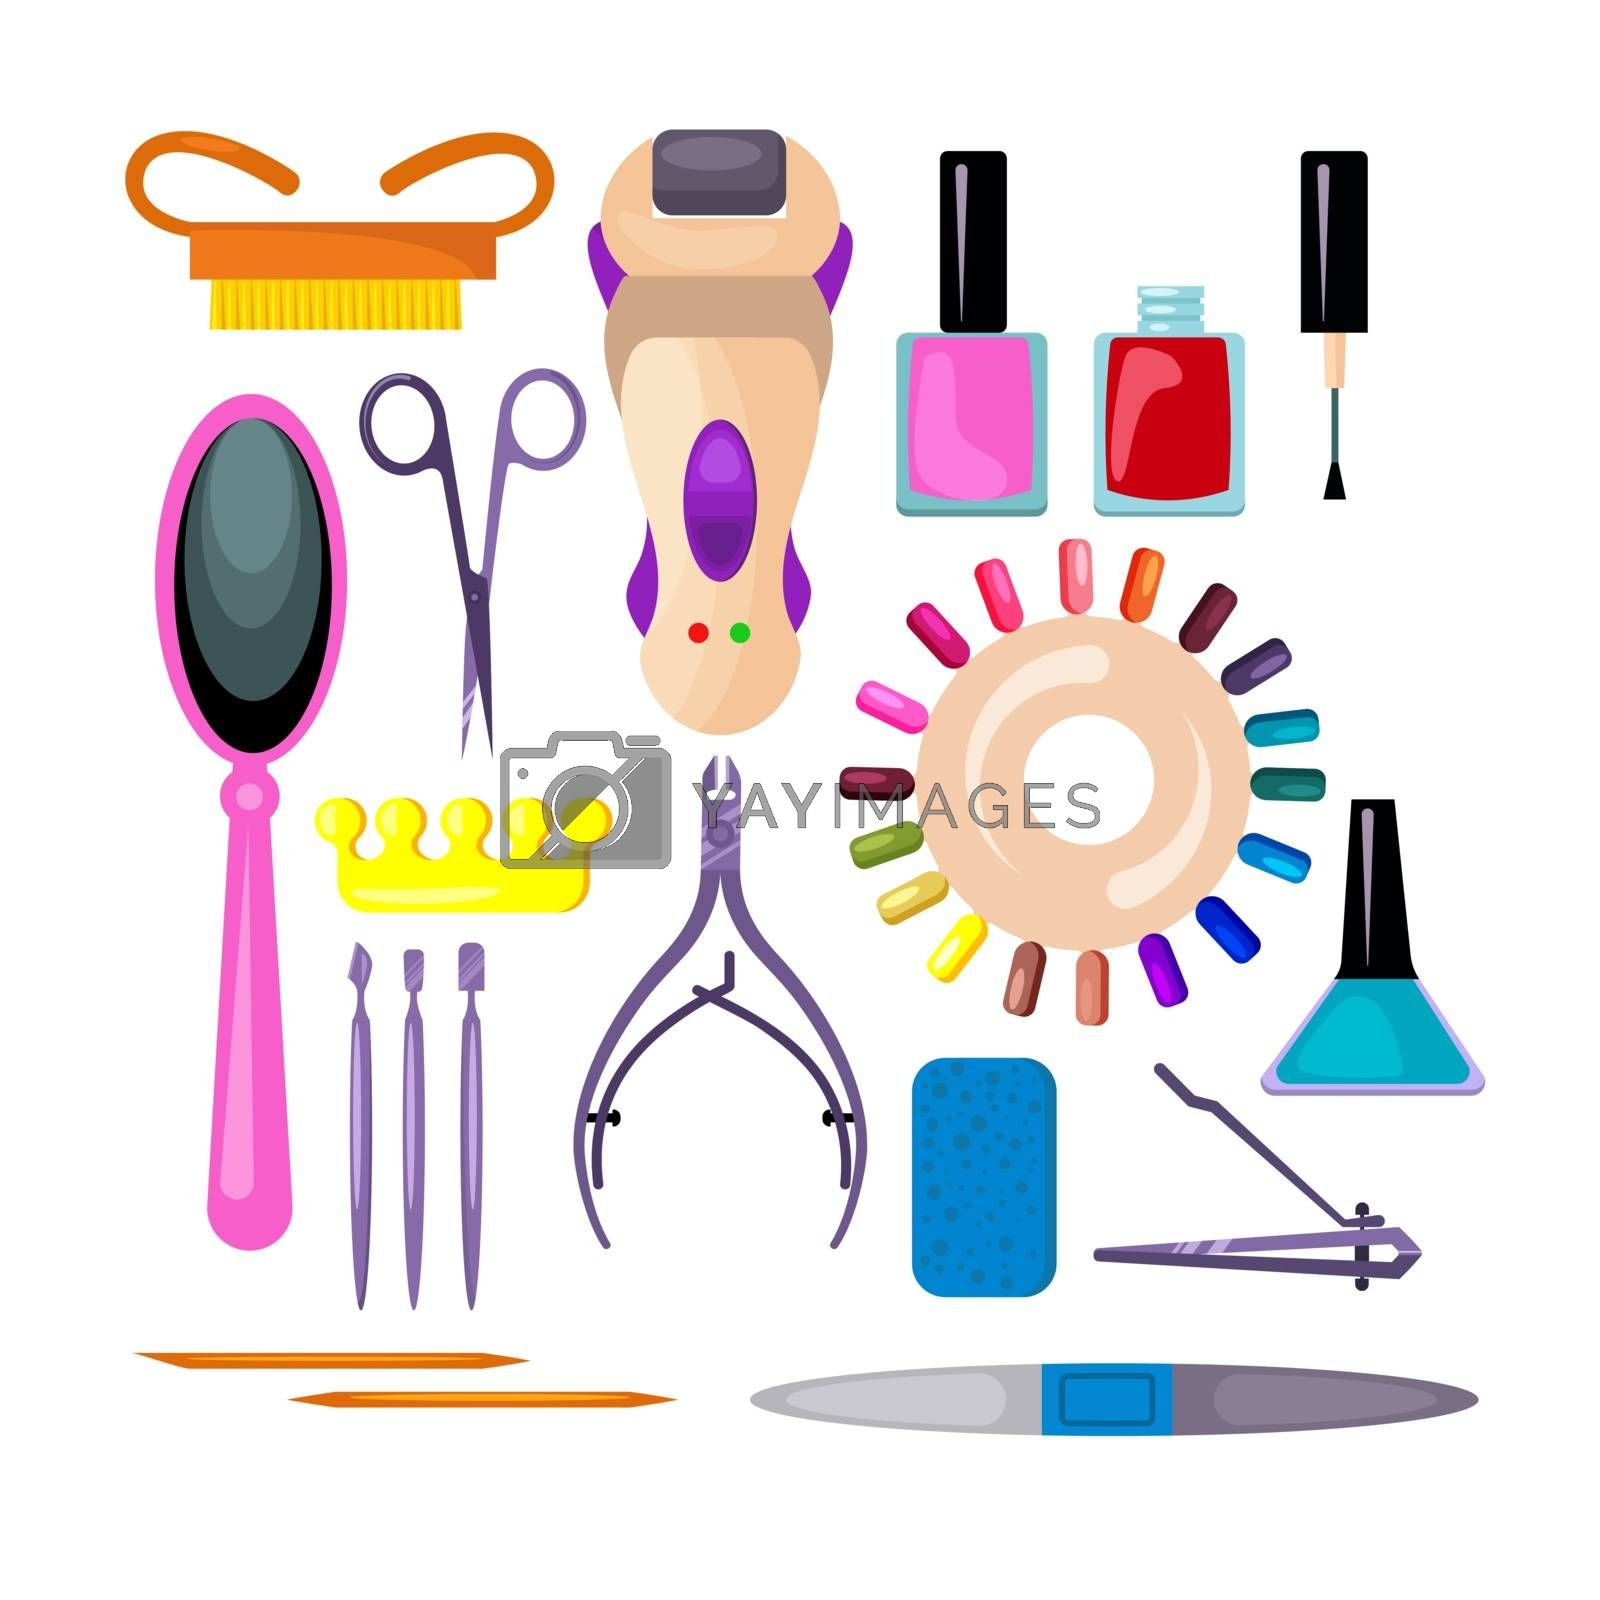 Manicure and pedicure set. Collection for fingernail design. Can be used for topics like salon, treatment, cosmetology